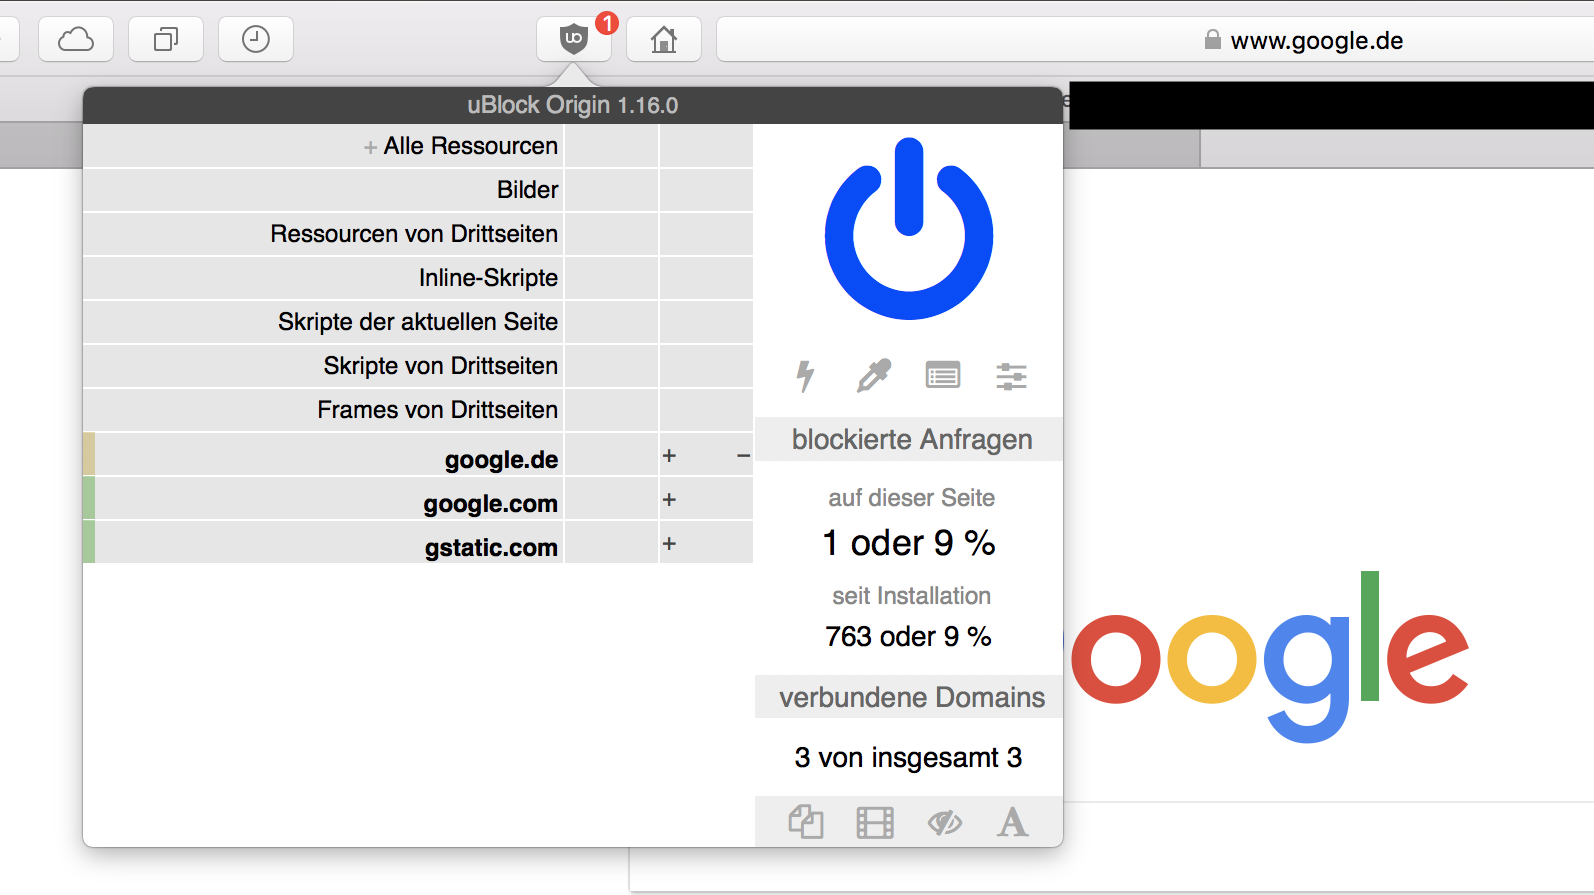 uBlock Origin - Chromium, Firefox和Safari的高效广告拦截器